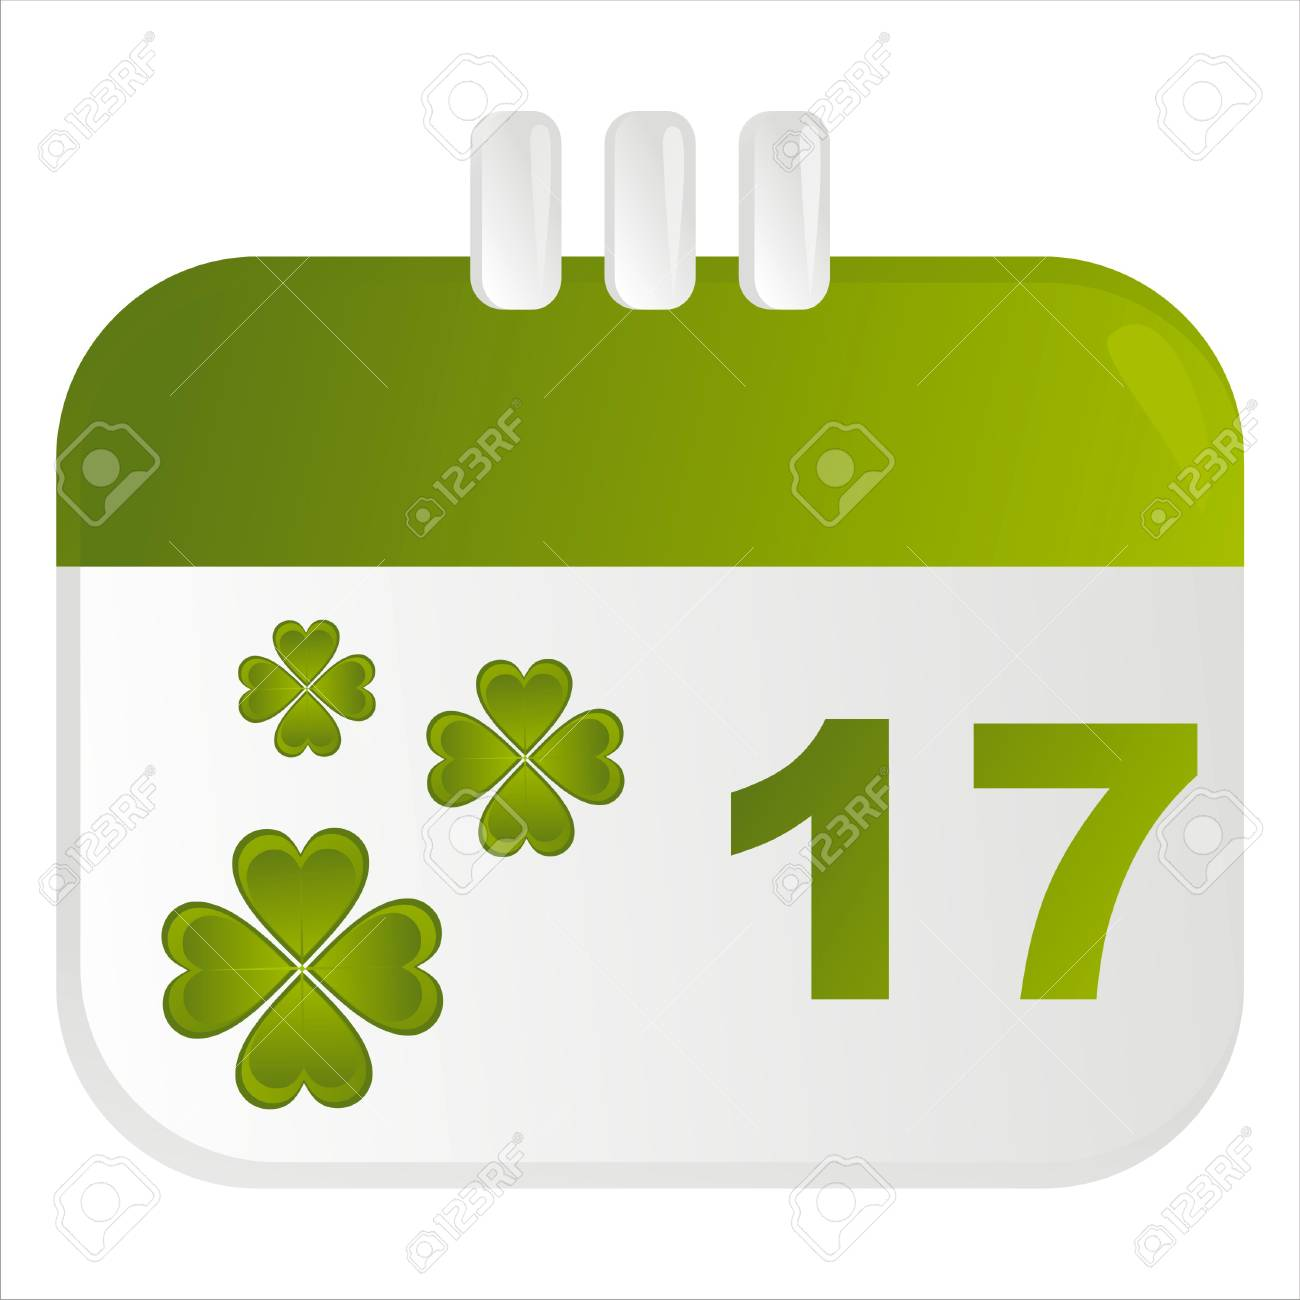 st. patrick's day calendar icon Stock Vector - 8777909